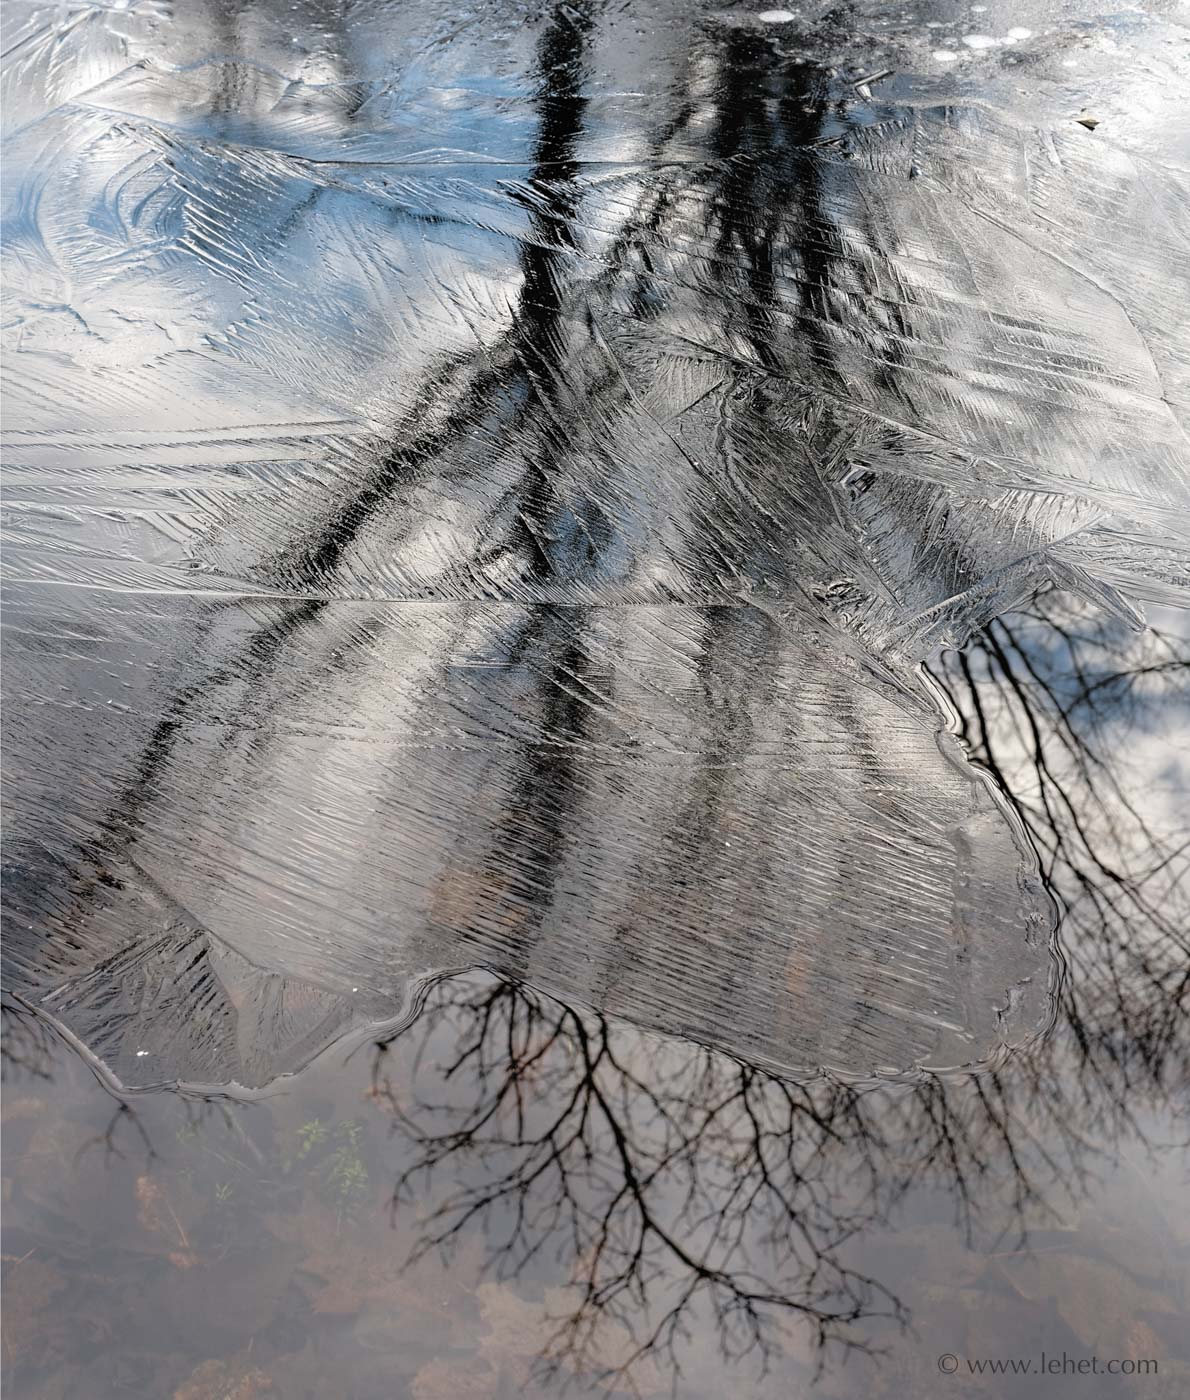 New Ice and Maple Tree Reflection